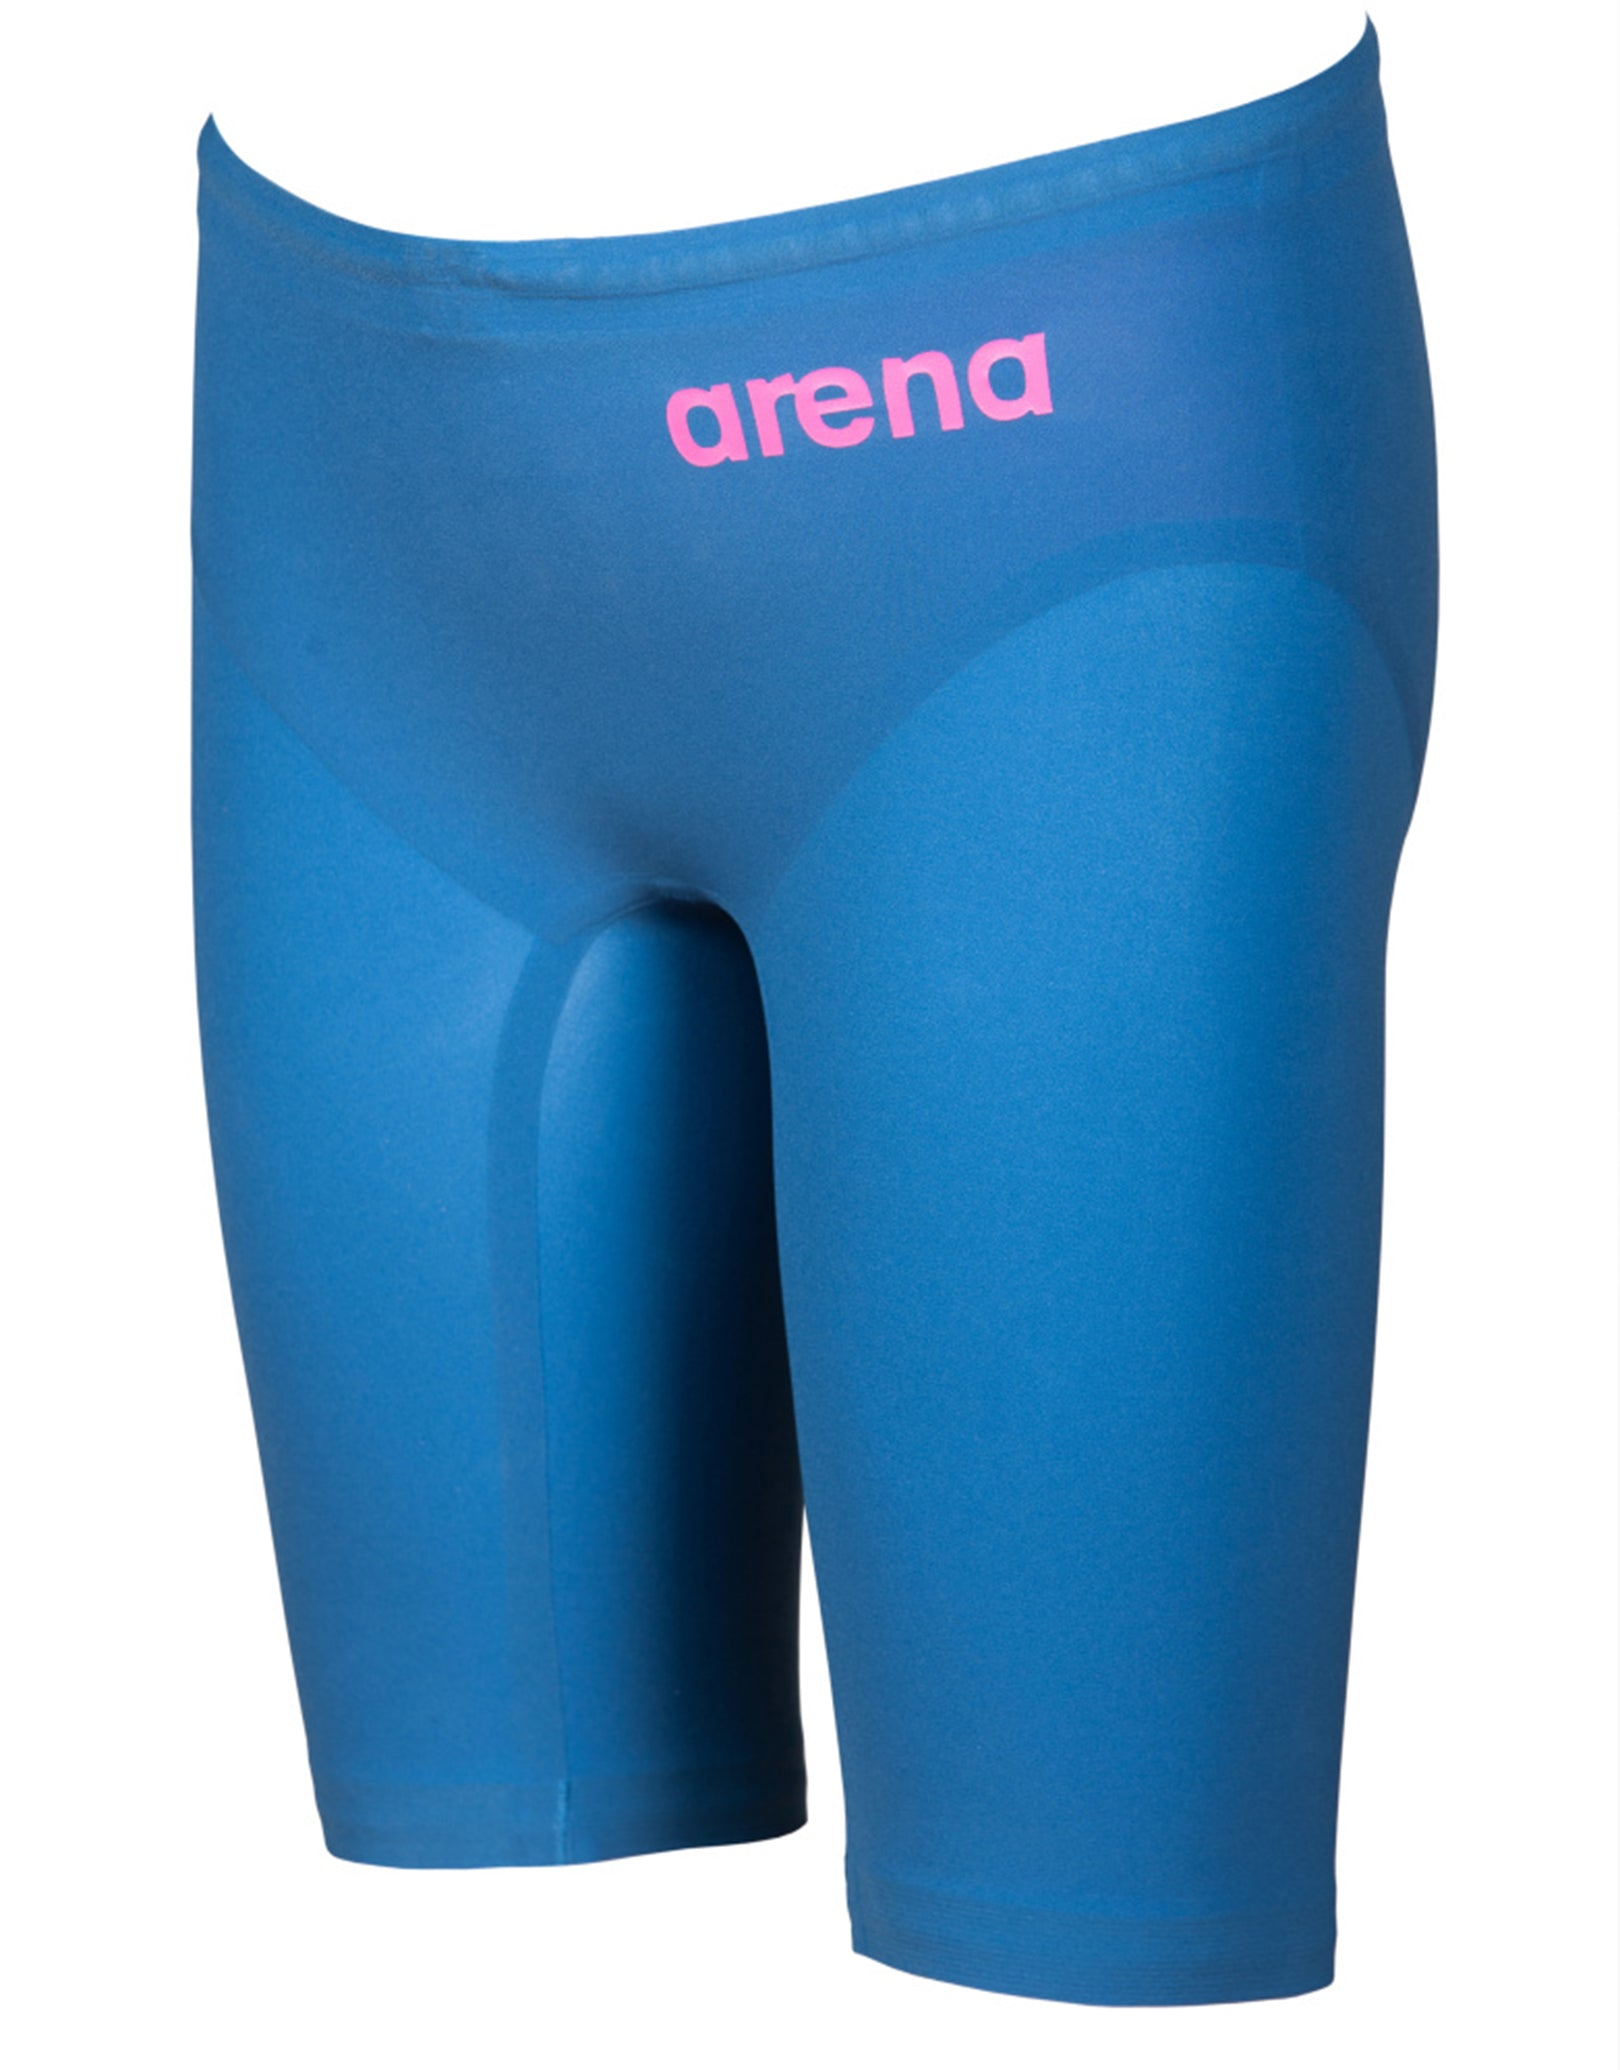 d2c56d8d8d Arena Boys Powerskin R-EVO One Jammer - Blue and Powder Pink ...